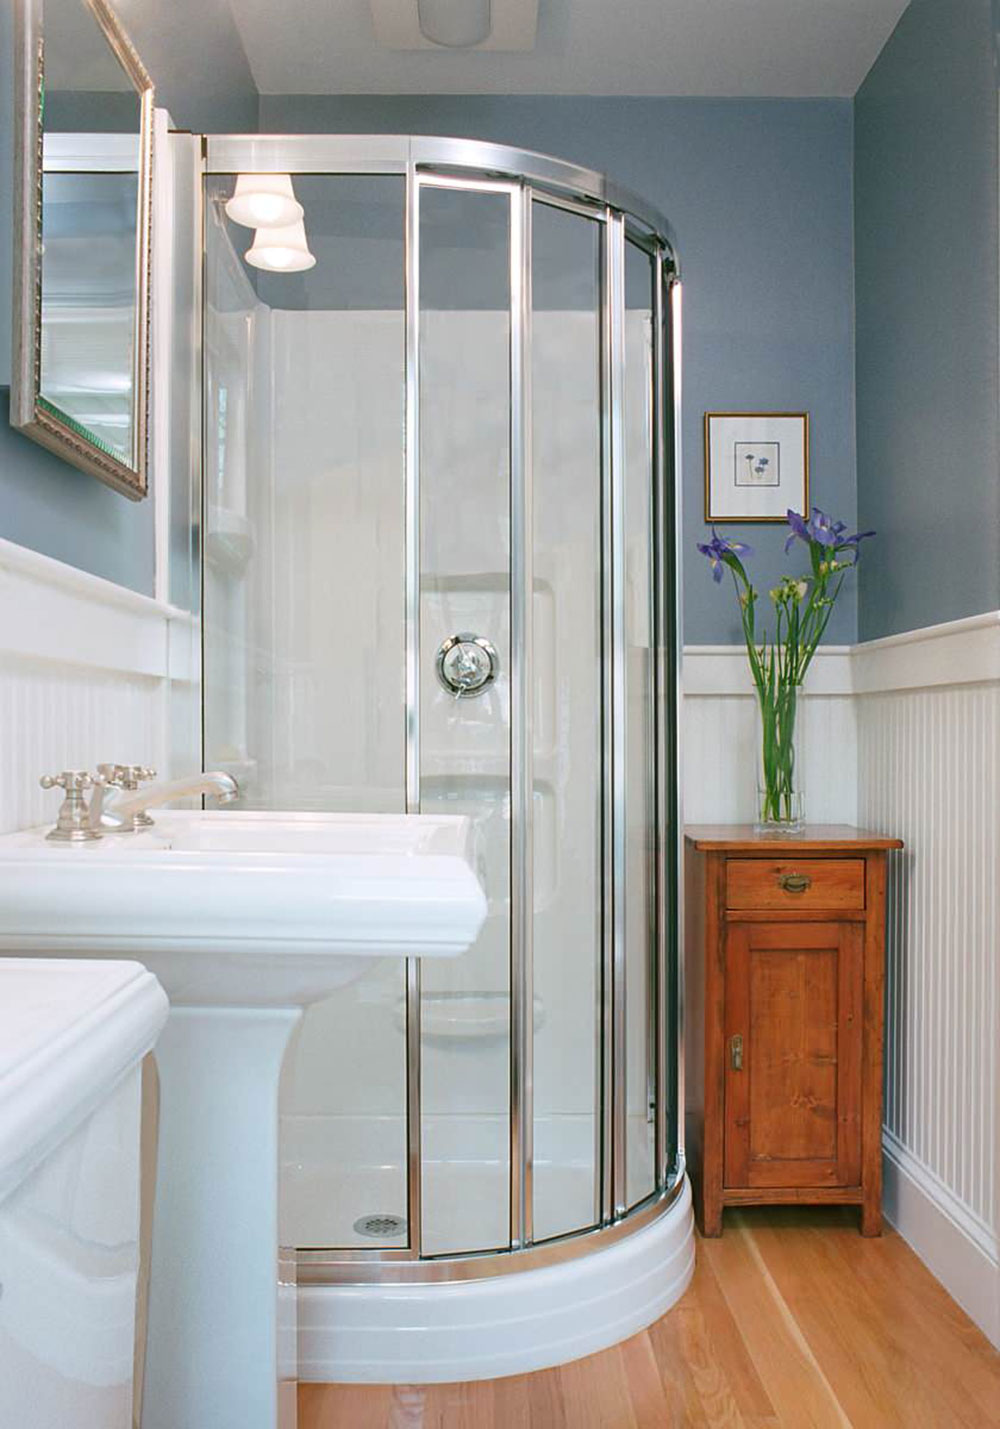 How To Make A Small Bathroom Look Bigger - Tips and Ideas Design Small Bathroom Ideas on half bath design ideas, small bedroom design, bathtub design ideas, small bathroom shower ideas, small bathroom ideas on a budget, small bathroom decorating ideas, closet design ideas, bathroom remodeling ideas, bathroom countertop ideas, interior design ideas, small rustic bathroom ideas, bathroom layout ideas, foyer design ideas, room design ideas, small bedroom ideas, shower design ideas, hallway design ideas, small bathroom wall ideas, bathroom color ideas, washroom design ideas,